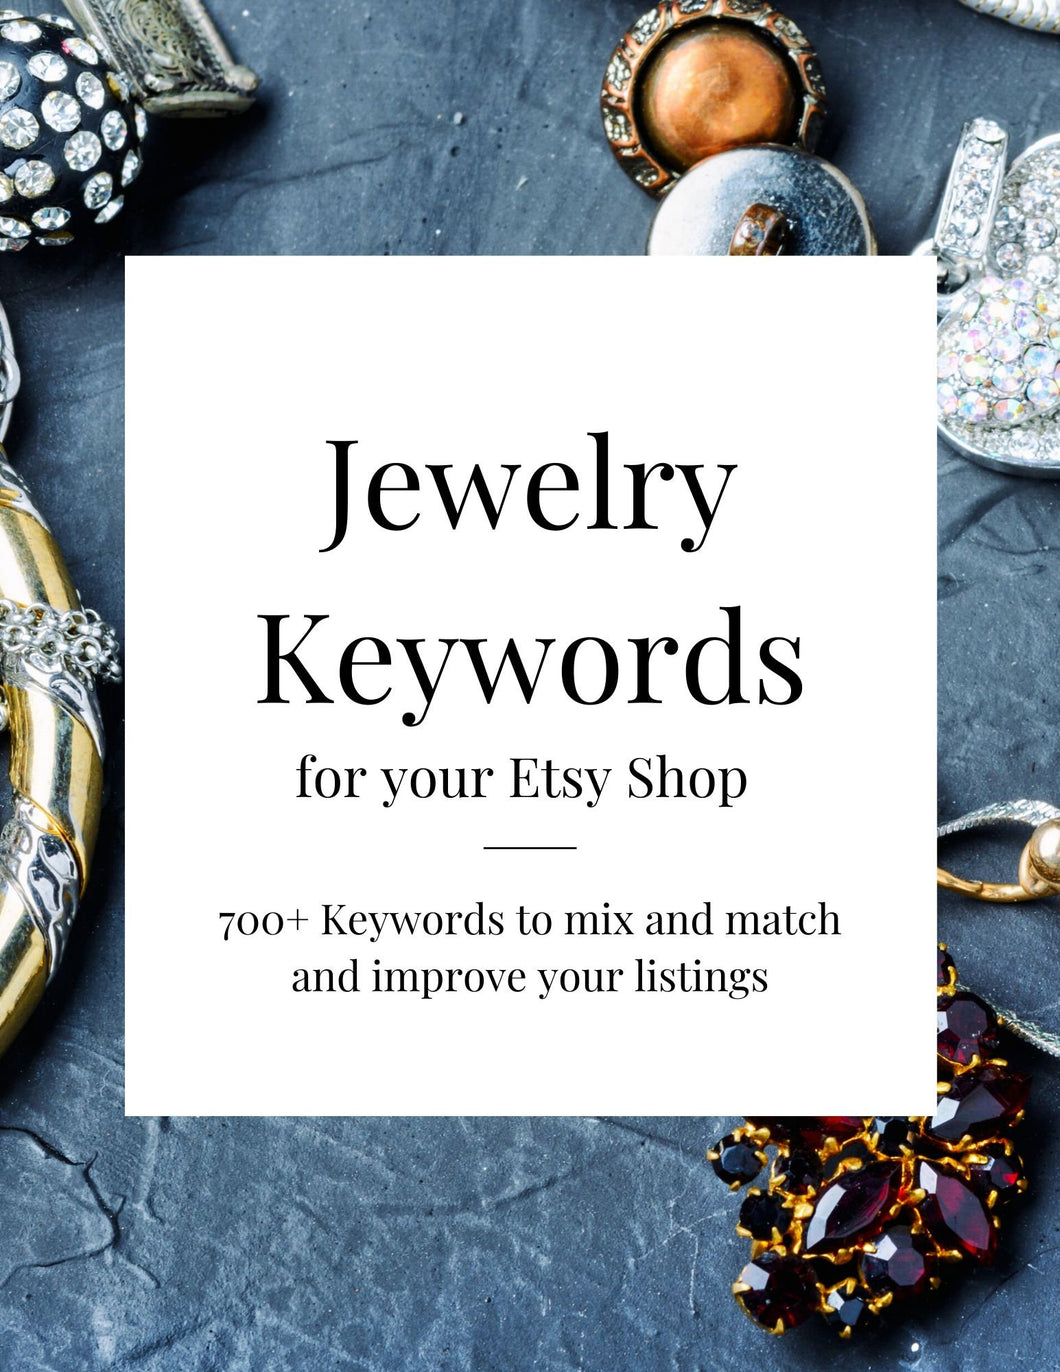 Jewelry Keywords for Etsy Listings, SEO Keywords, Etsy Help, Etsy SEO, Etsy Keywords